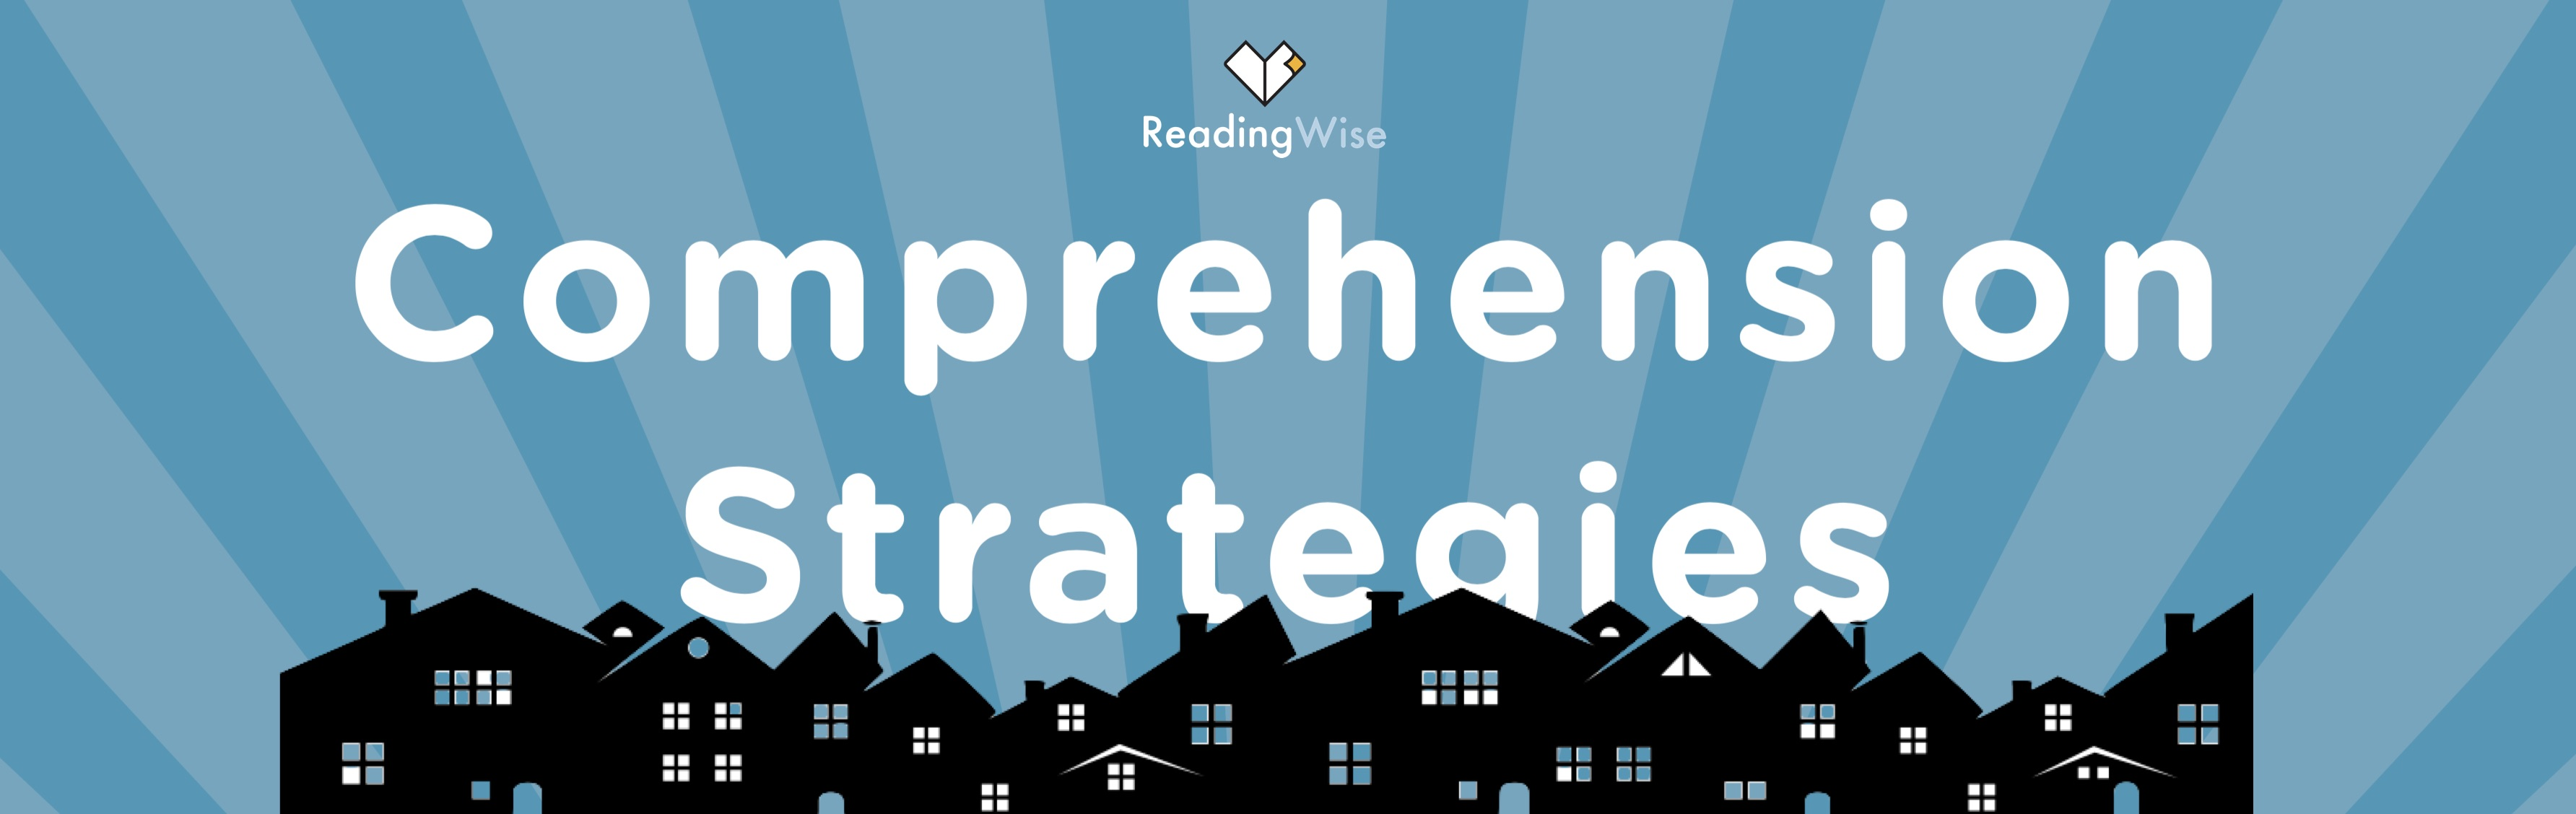 Home Learning with ReadingWise: Comprehension